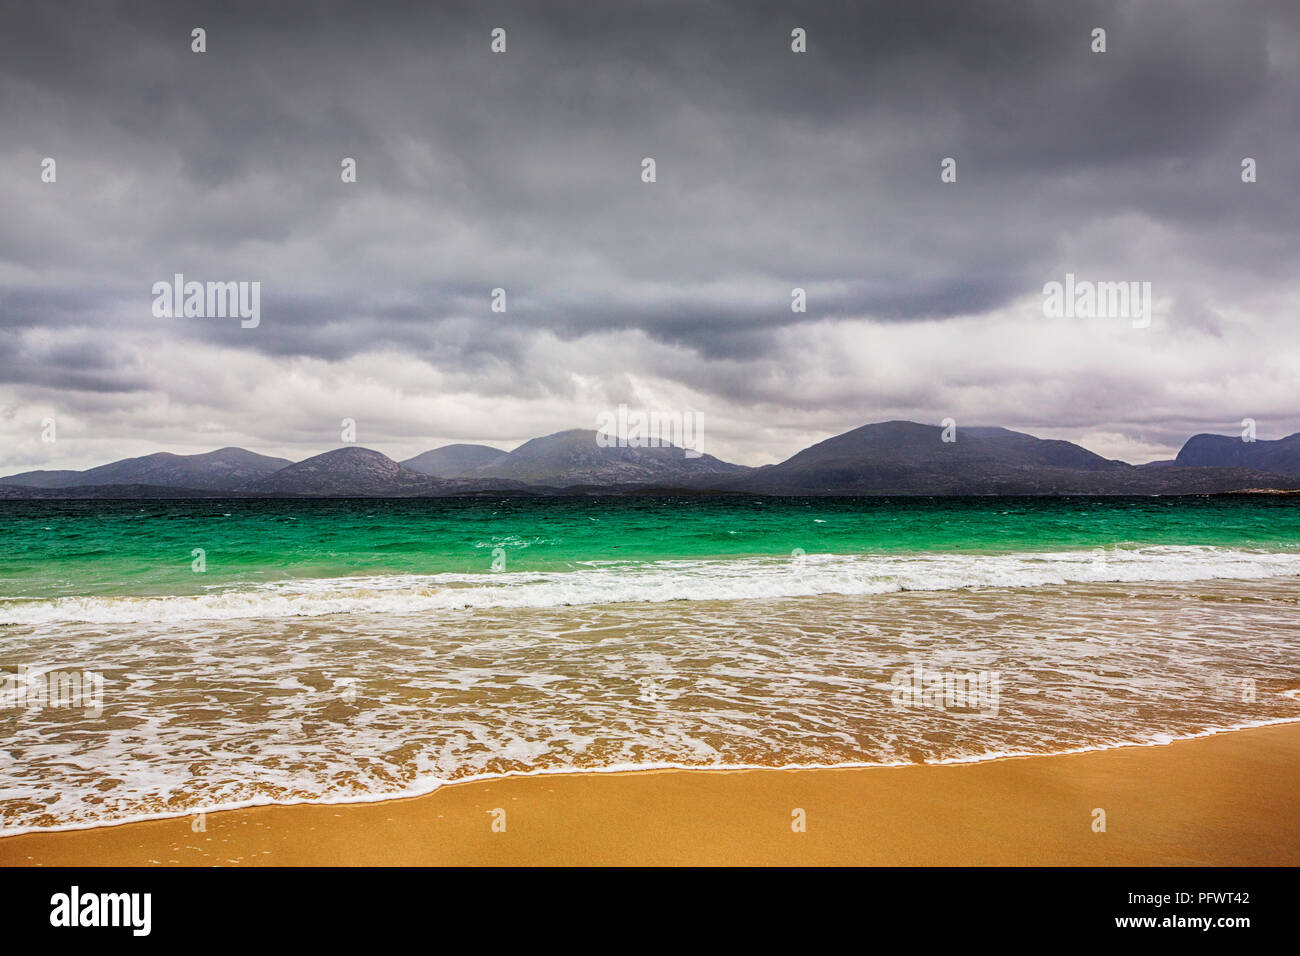 The famous Luskentyre Beach on the Isle of Harris, Outer Hebrides, Scotland, UK. - Stock Image